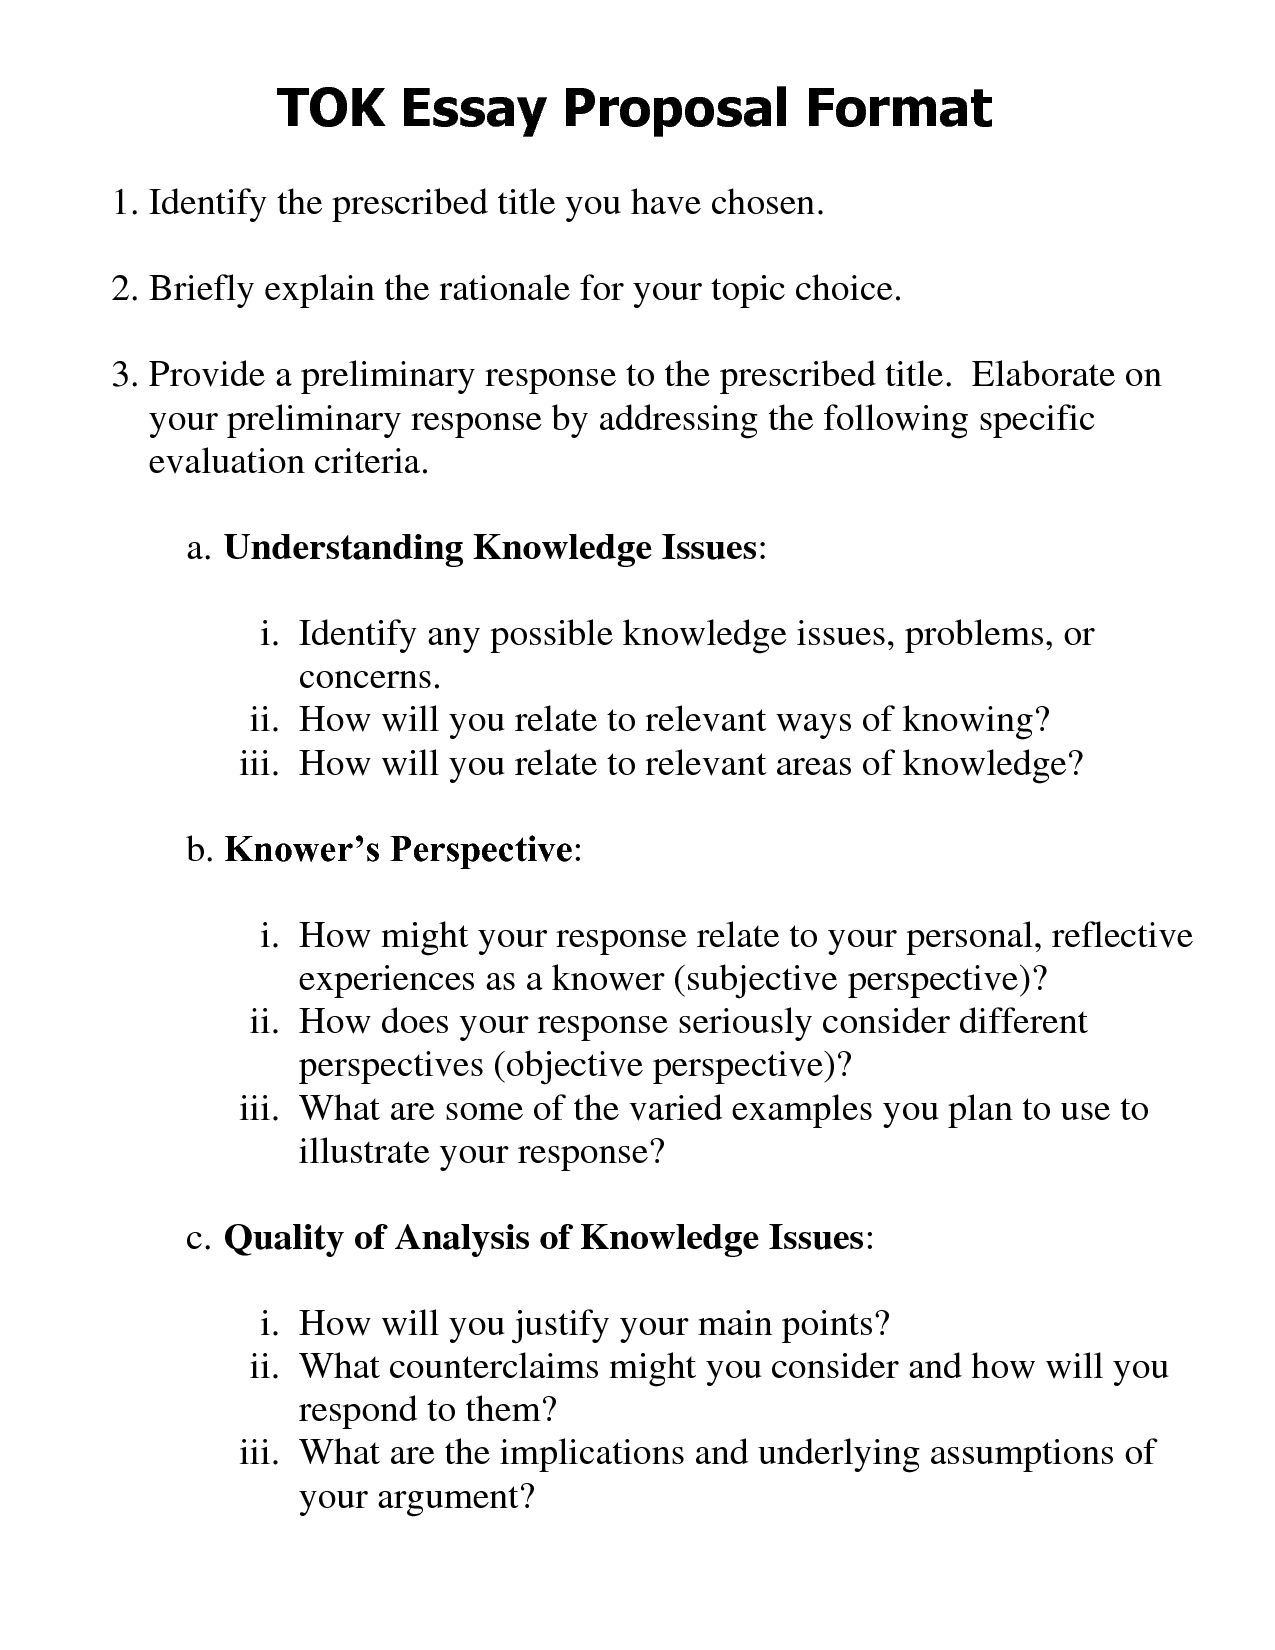 Science Fiction Essays Proposal Essay Essay Thesis Statement Examples also Essay For High School Students Proposal Essay  Exolgbabogadosco Essay Writing Format For High School Students